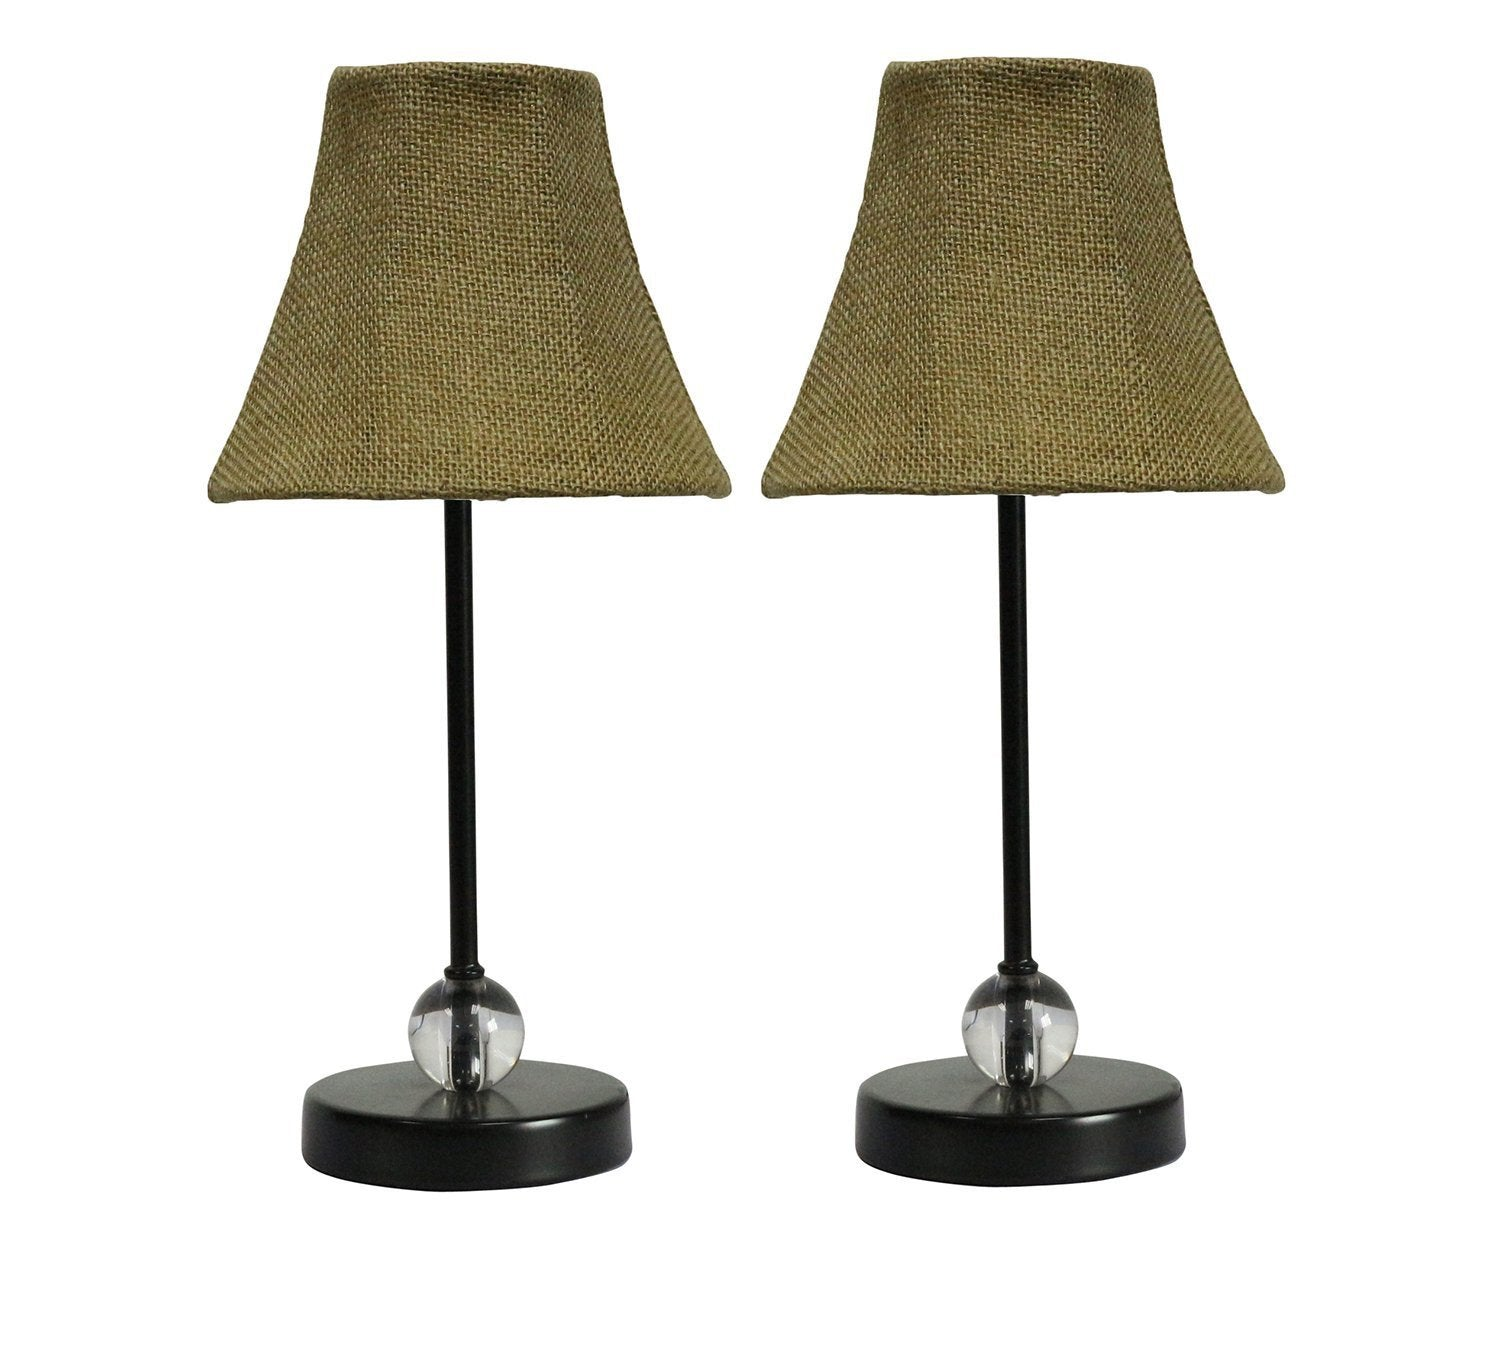 Chelsea Mini Accent Lamp with Burlap Lamp Shade